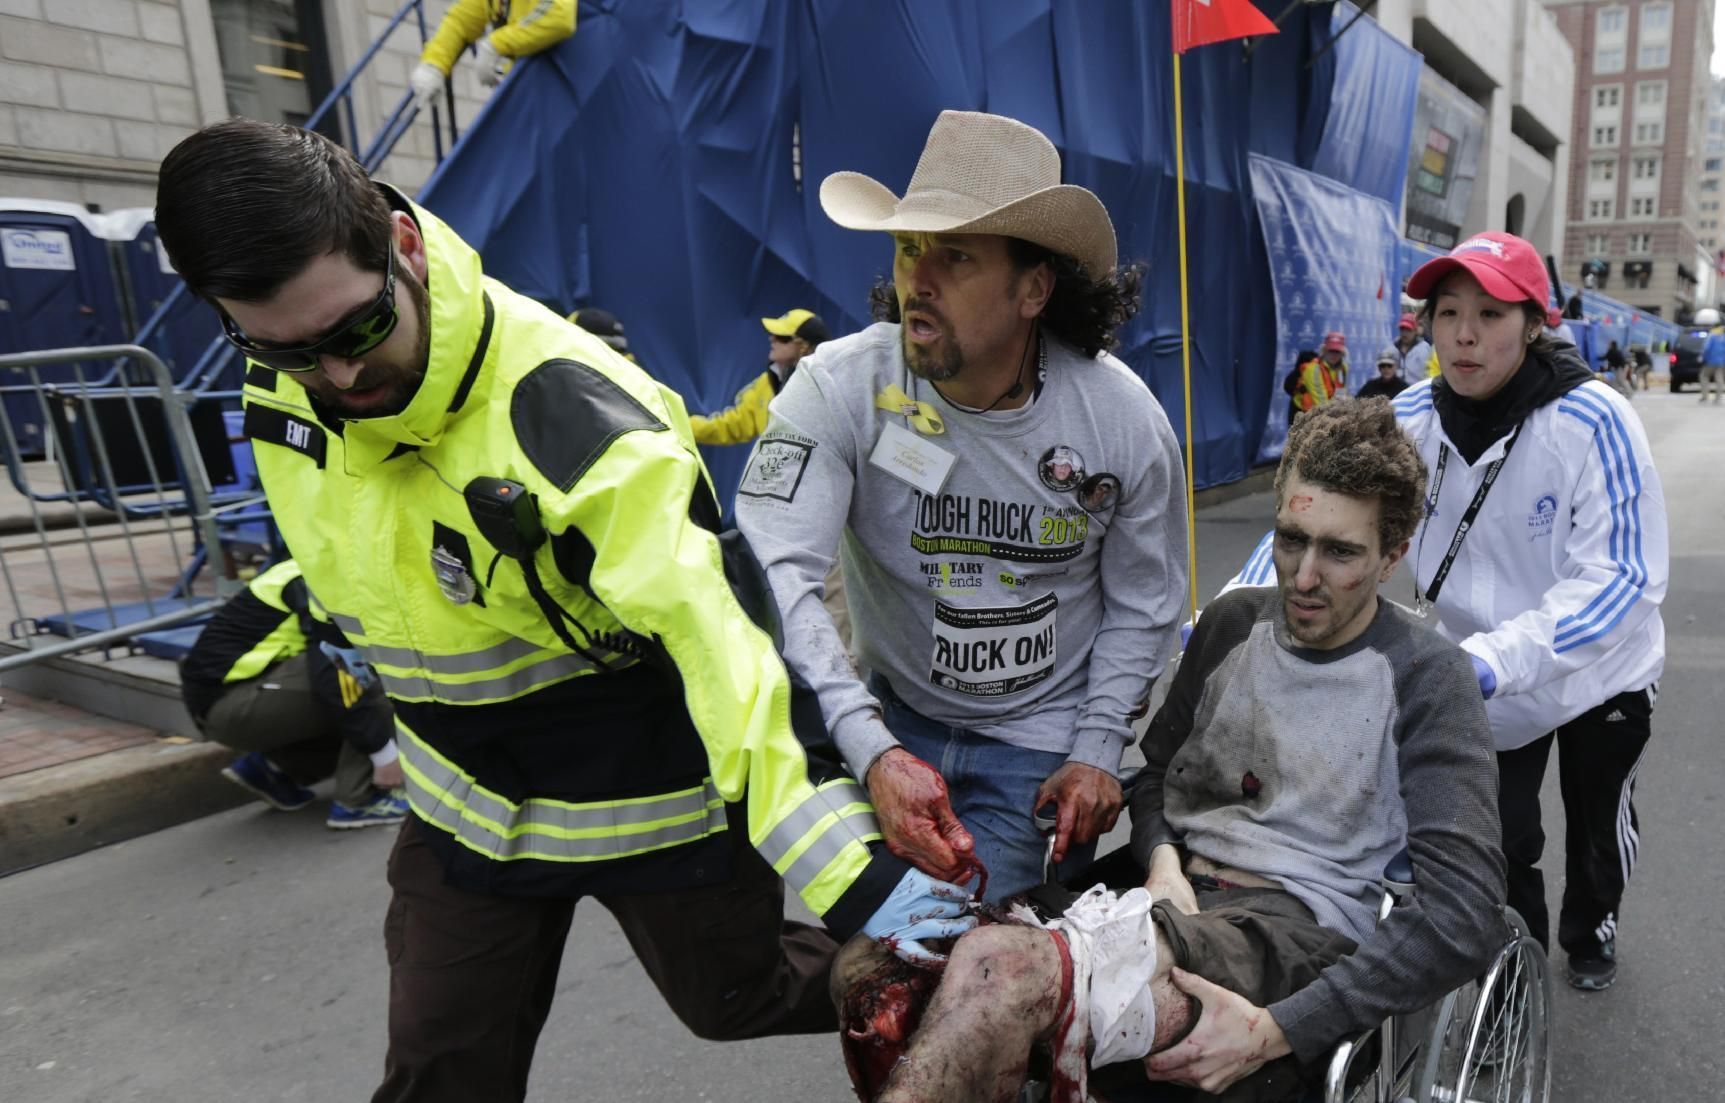 Boston Marathon bombing survivors brace for movies on attack